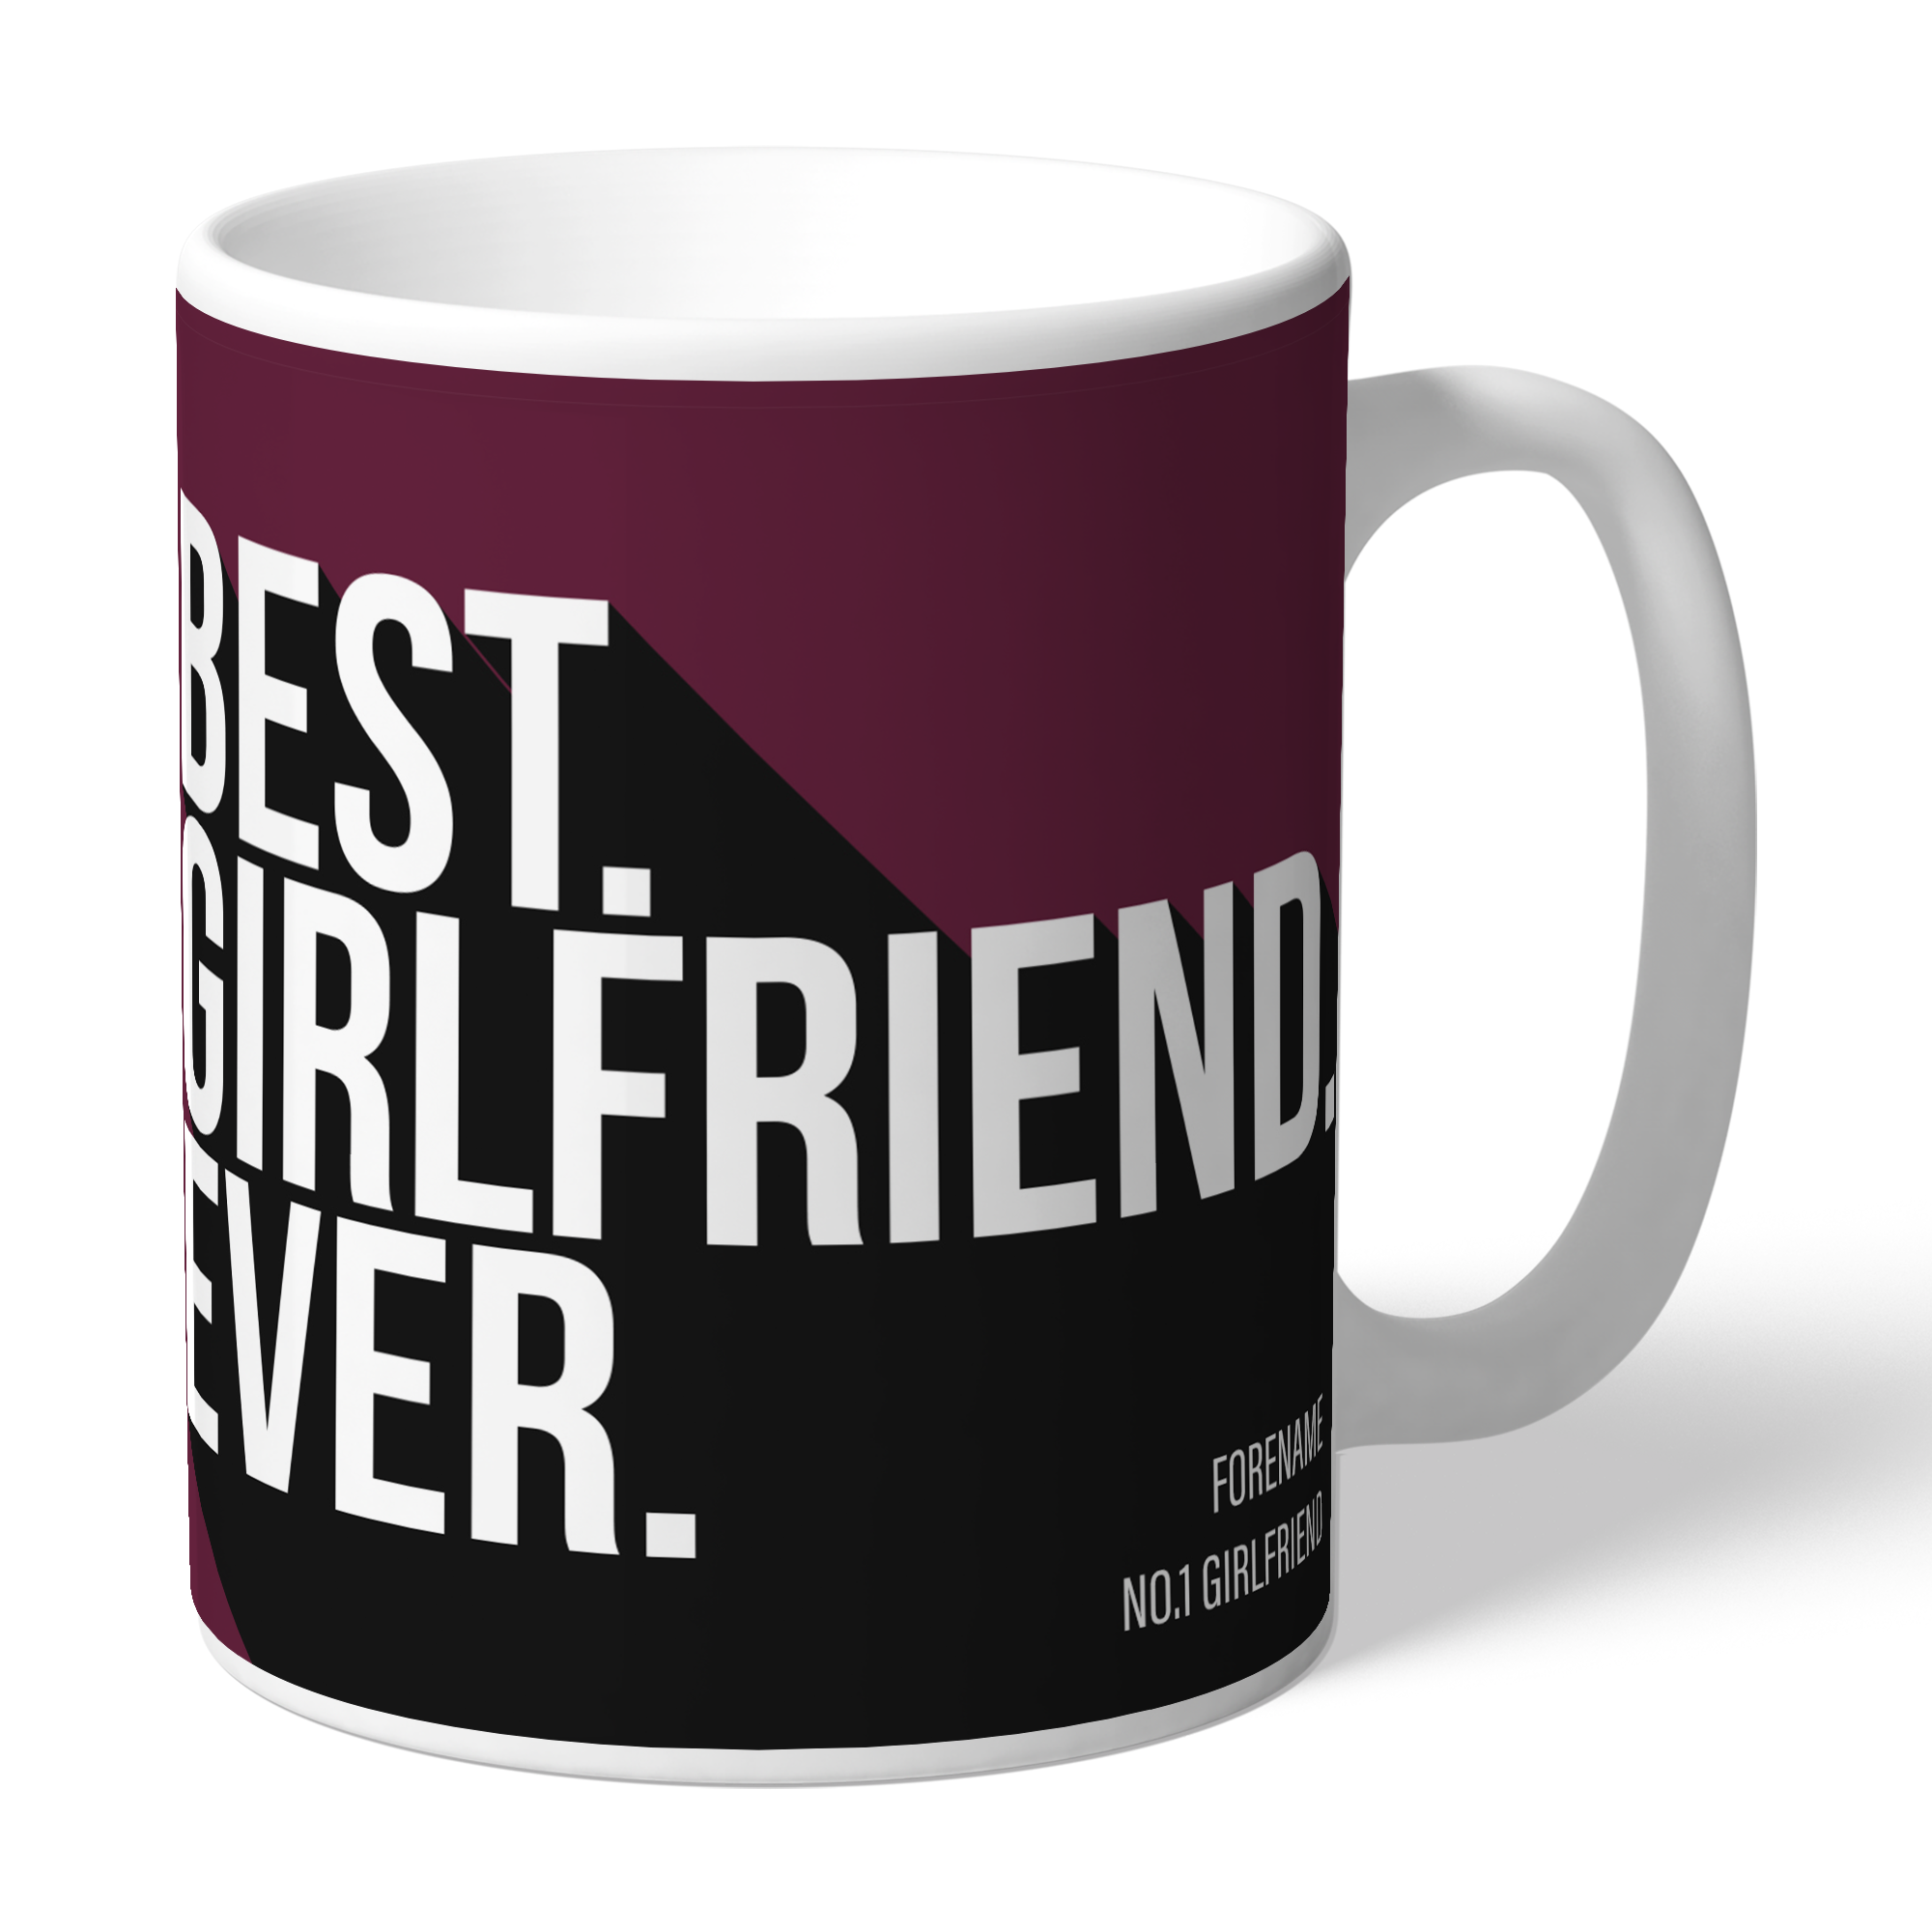 Burnley FC Best Girlfriend Ever Mug